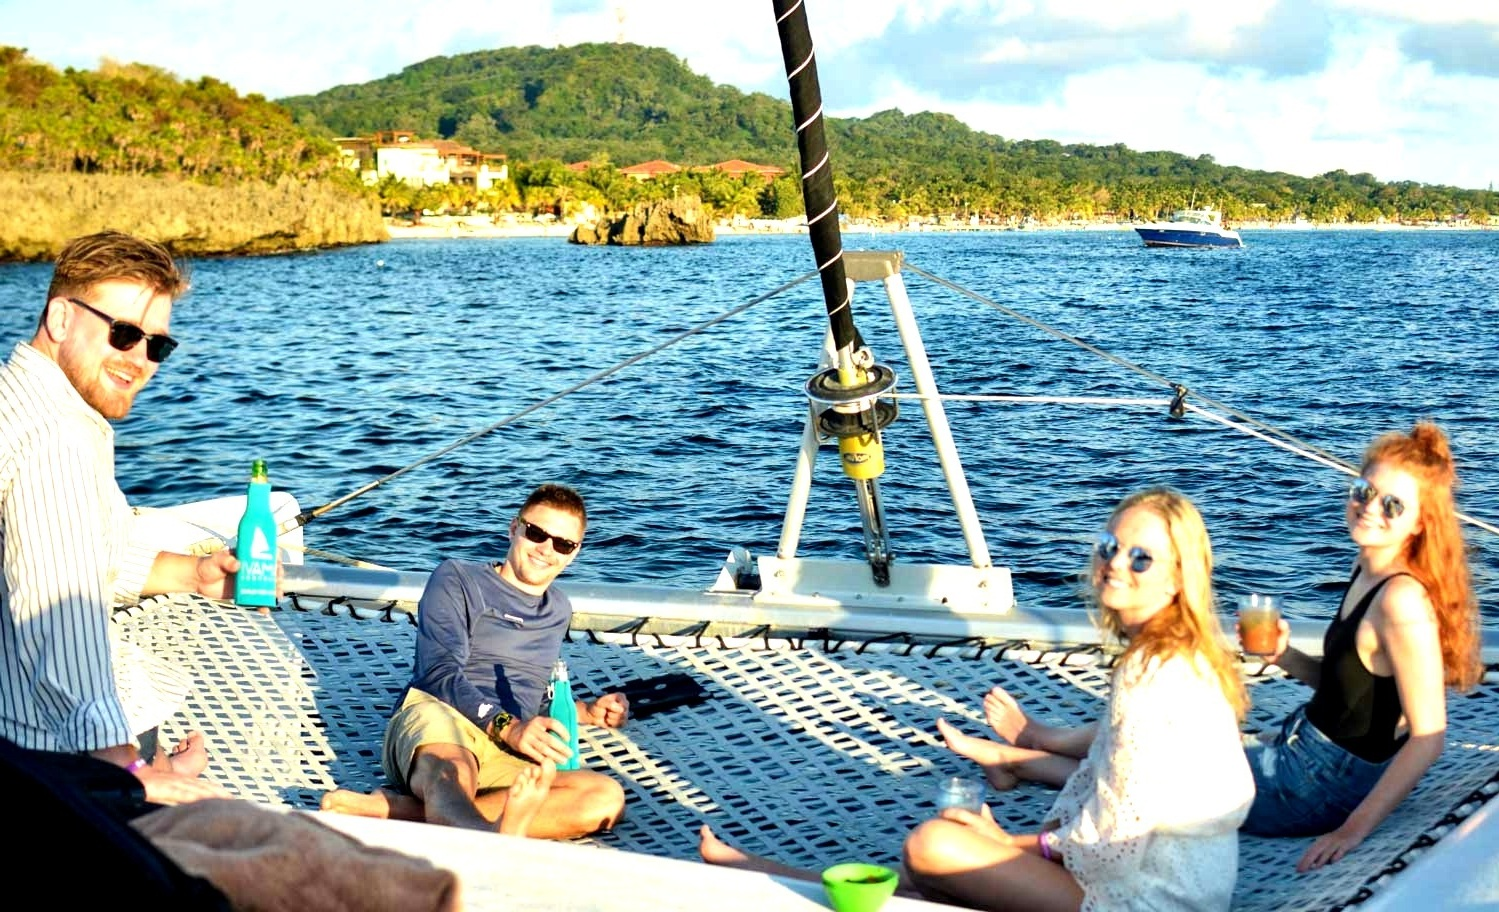 SUNSET SAILING - 4:30 - The magnificent sky will guide us west along the island's south shore for a cracking sail home with the trade winds at our back! Take in the sunset with savory hors d'oeuvres and cold beverages to close another perfect day in paradise.6pm - Disembark at Parrot Tree Marina in time to make it to your dinner reservation. Need a restaurant recommendation? Just ask!